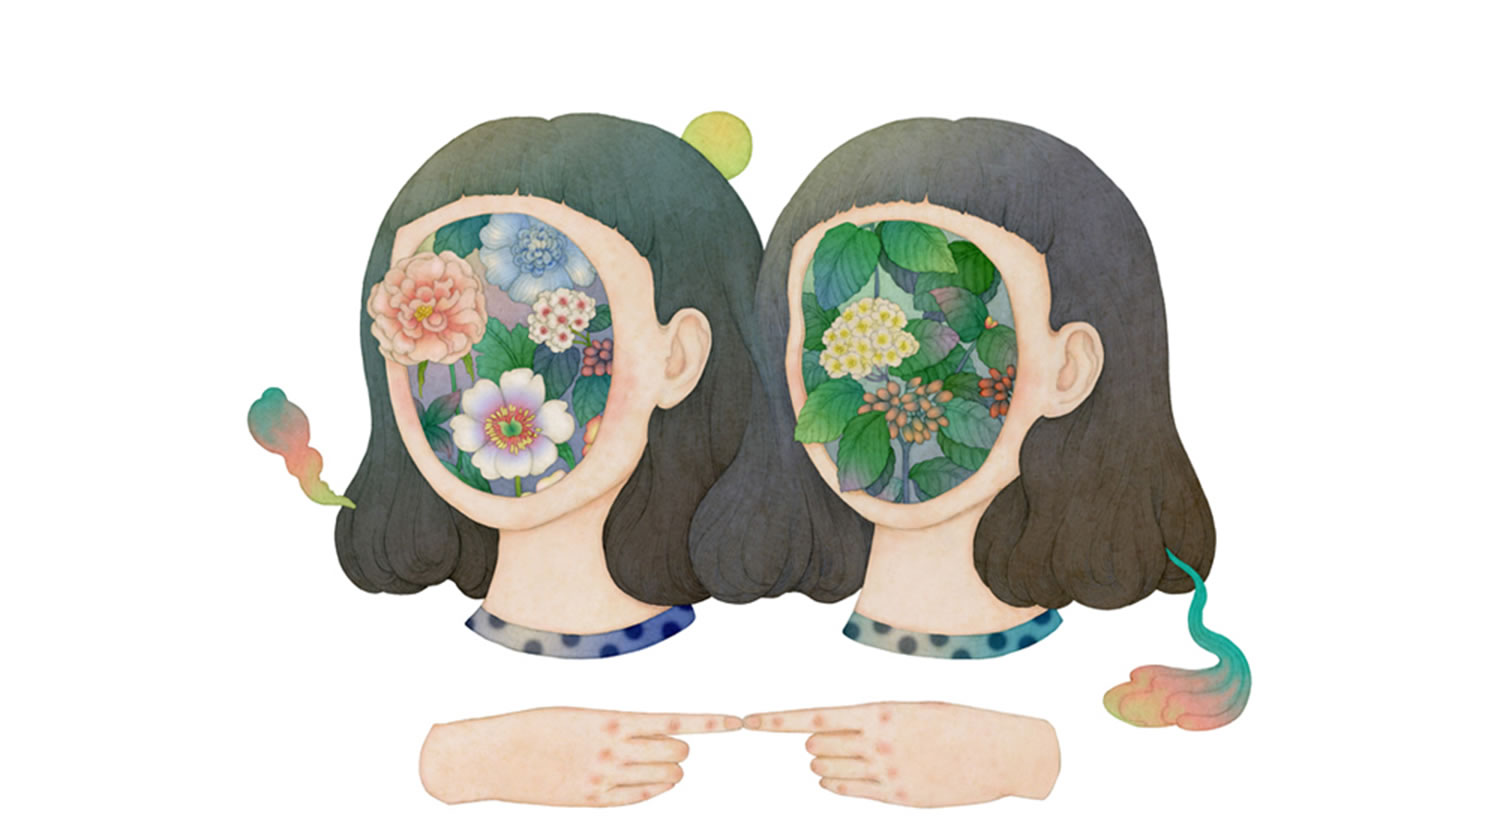 Whooli Chen illustration of flowers covering face